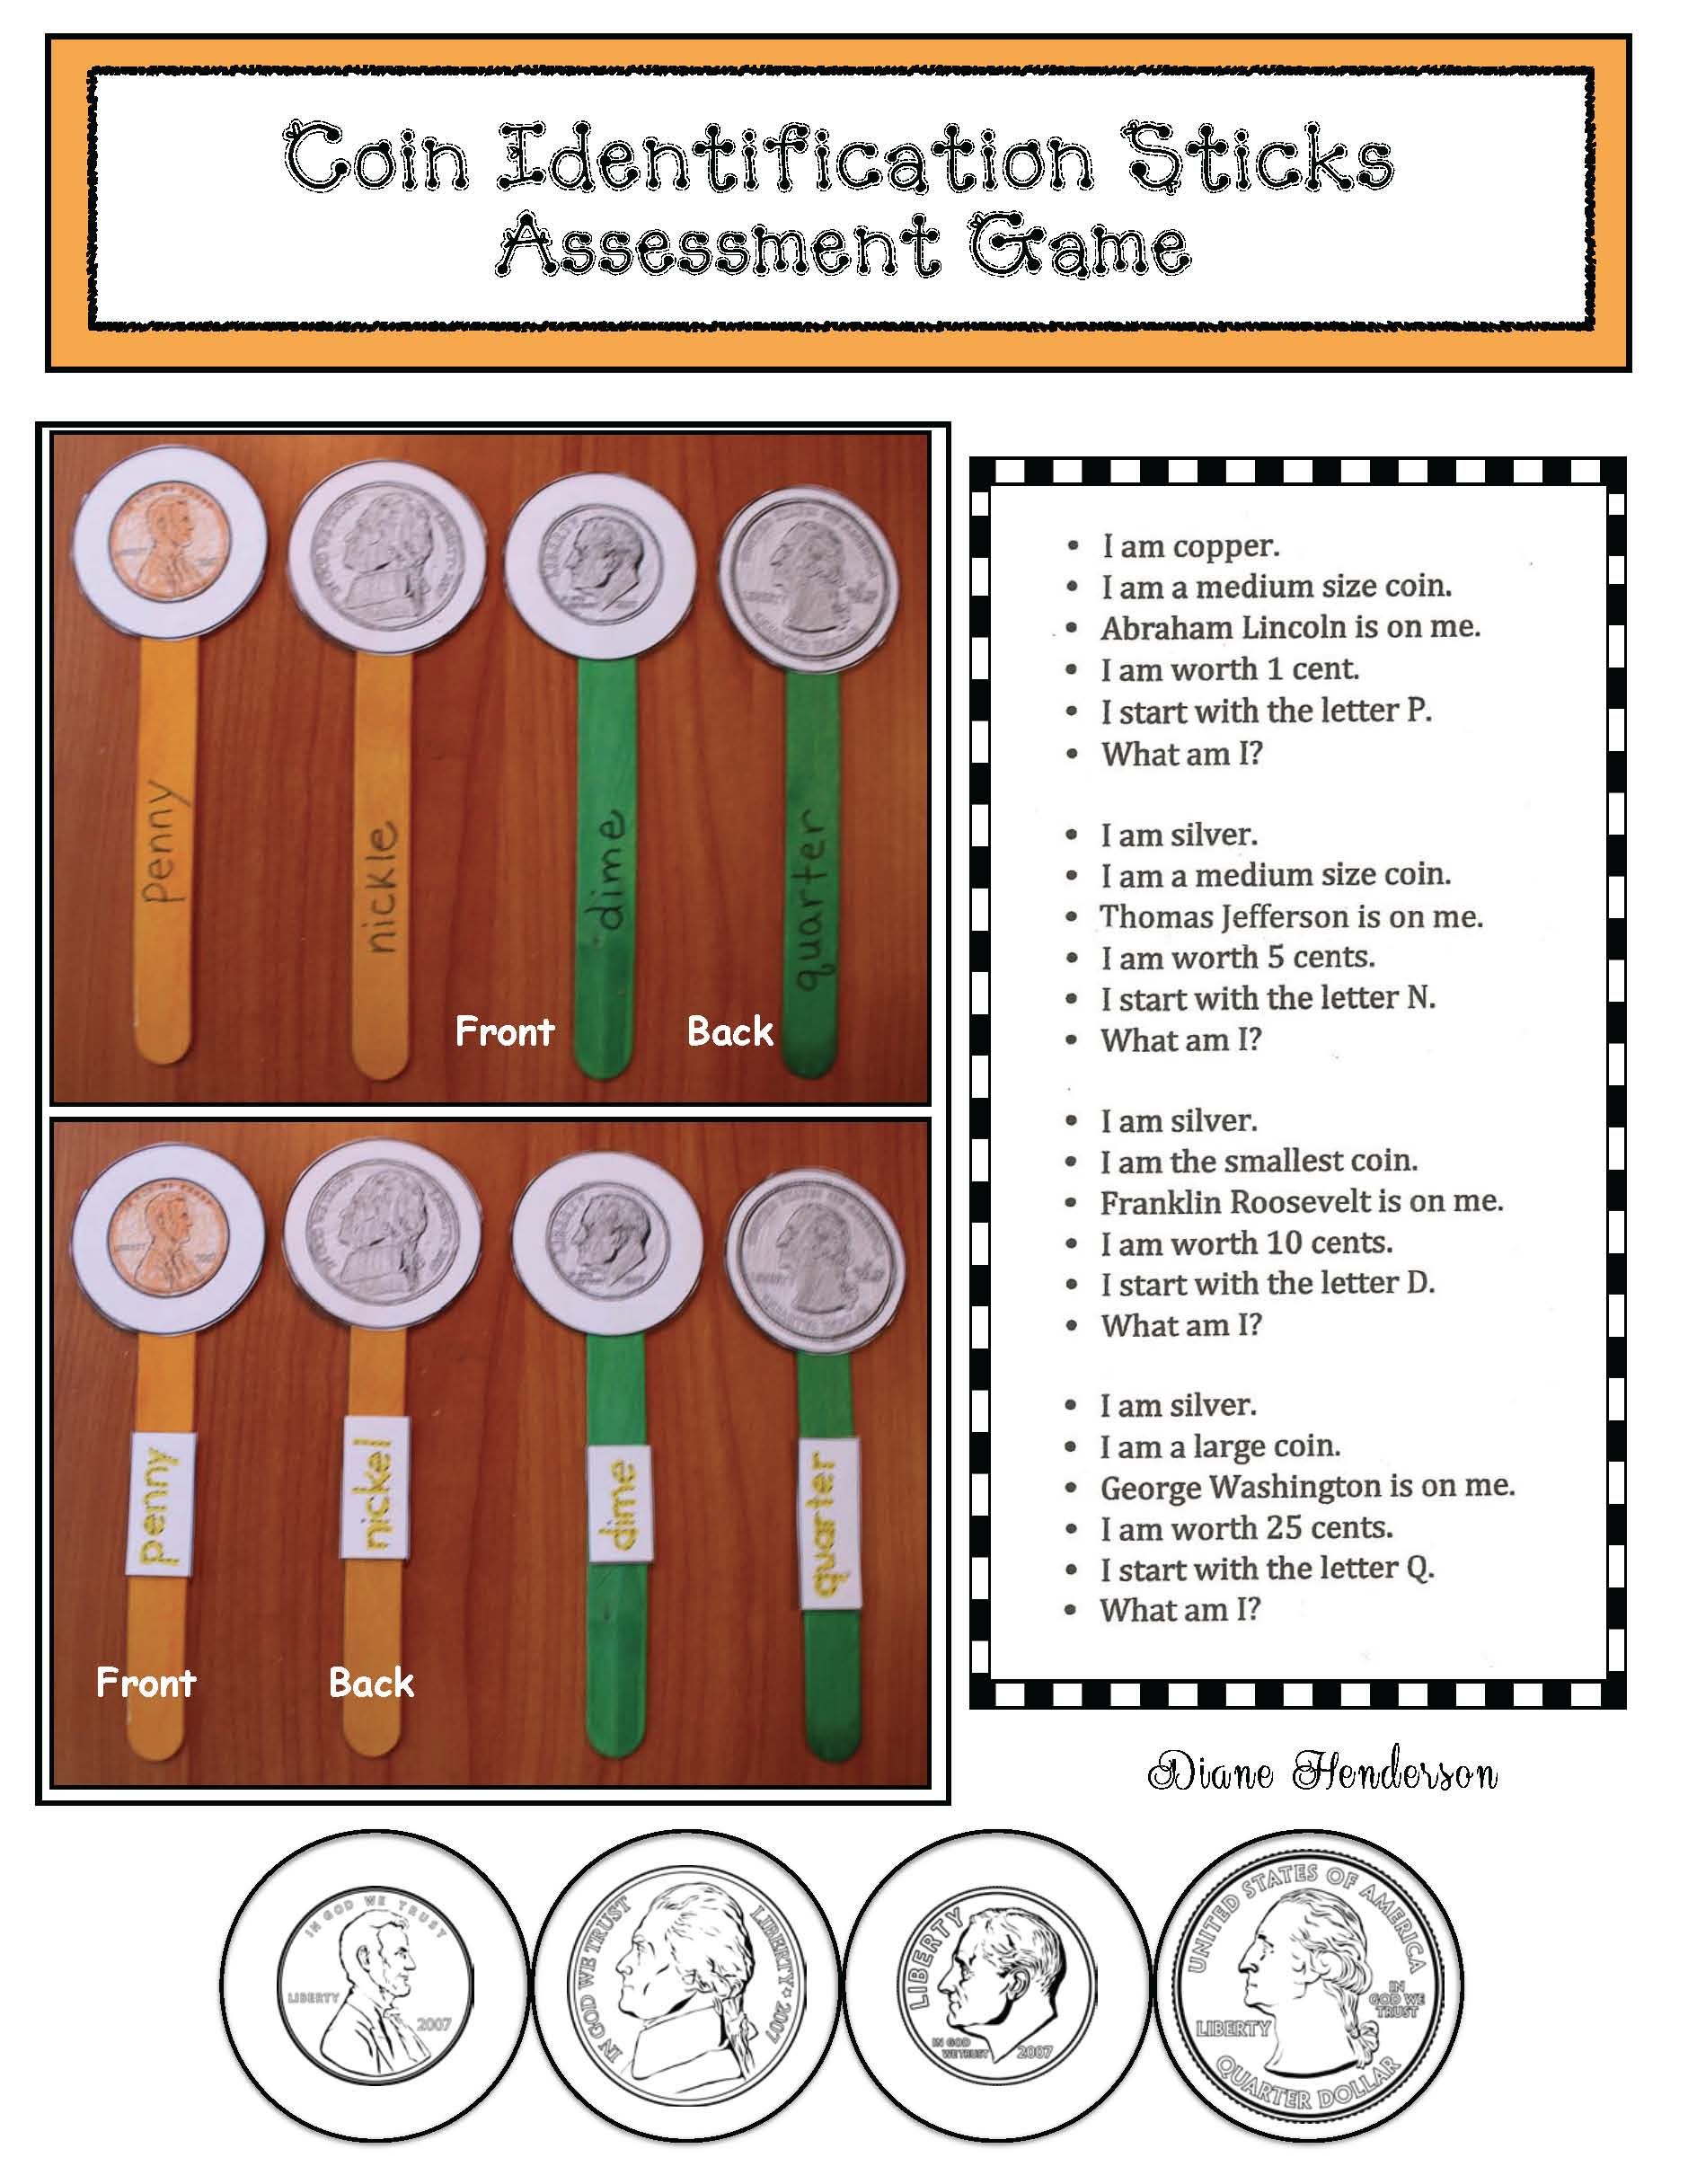 cover coin sticks